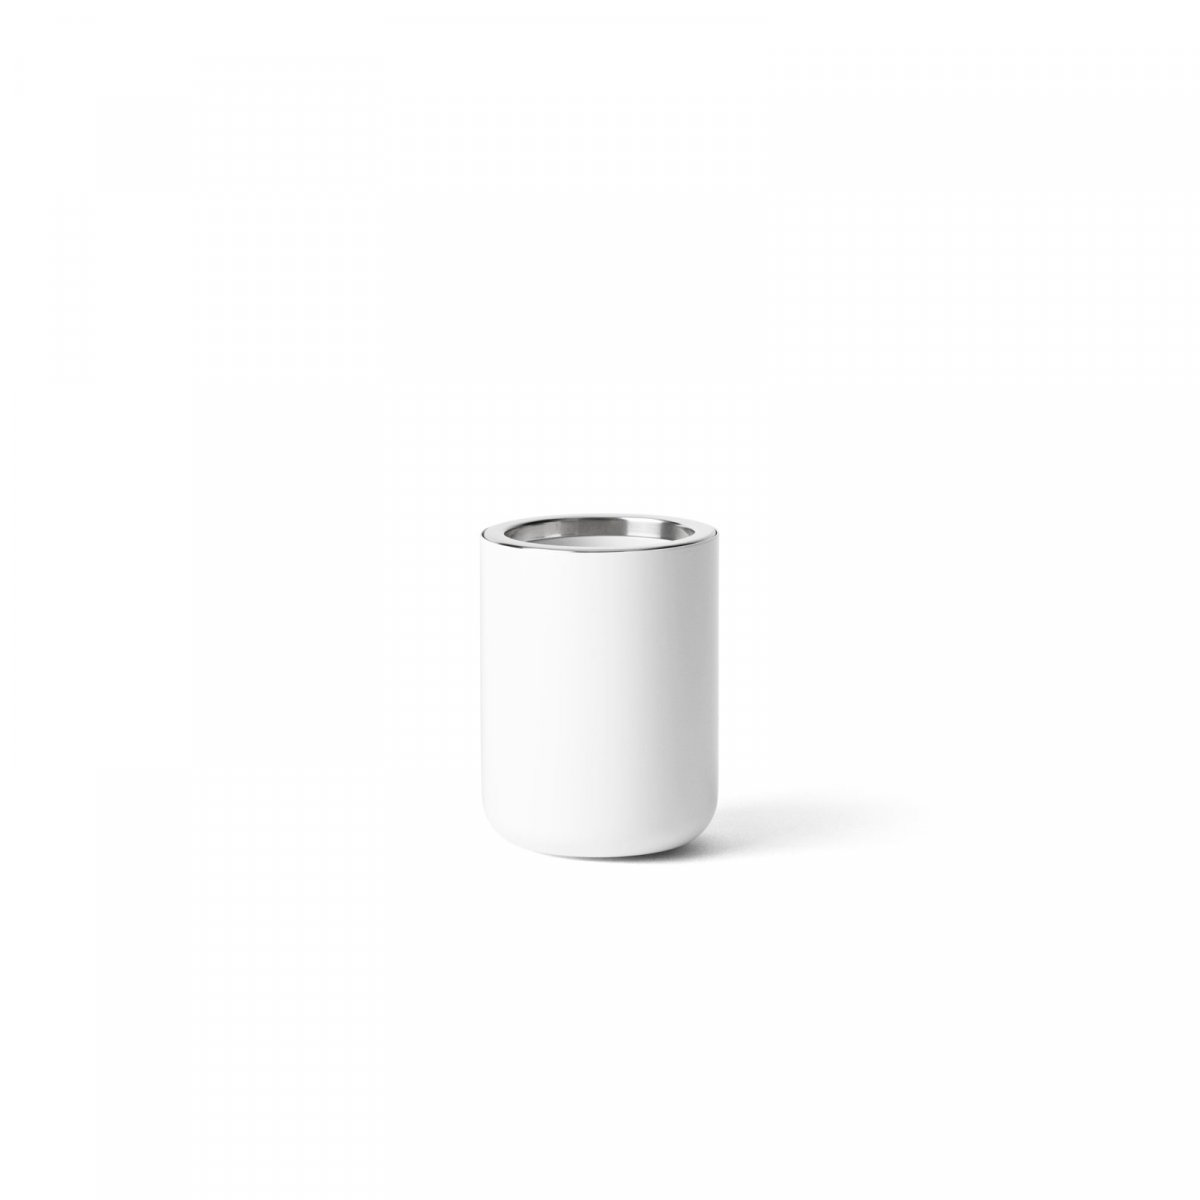 Toothbrush Holder, white.